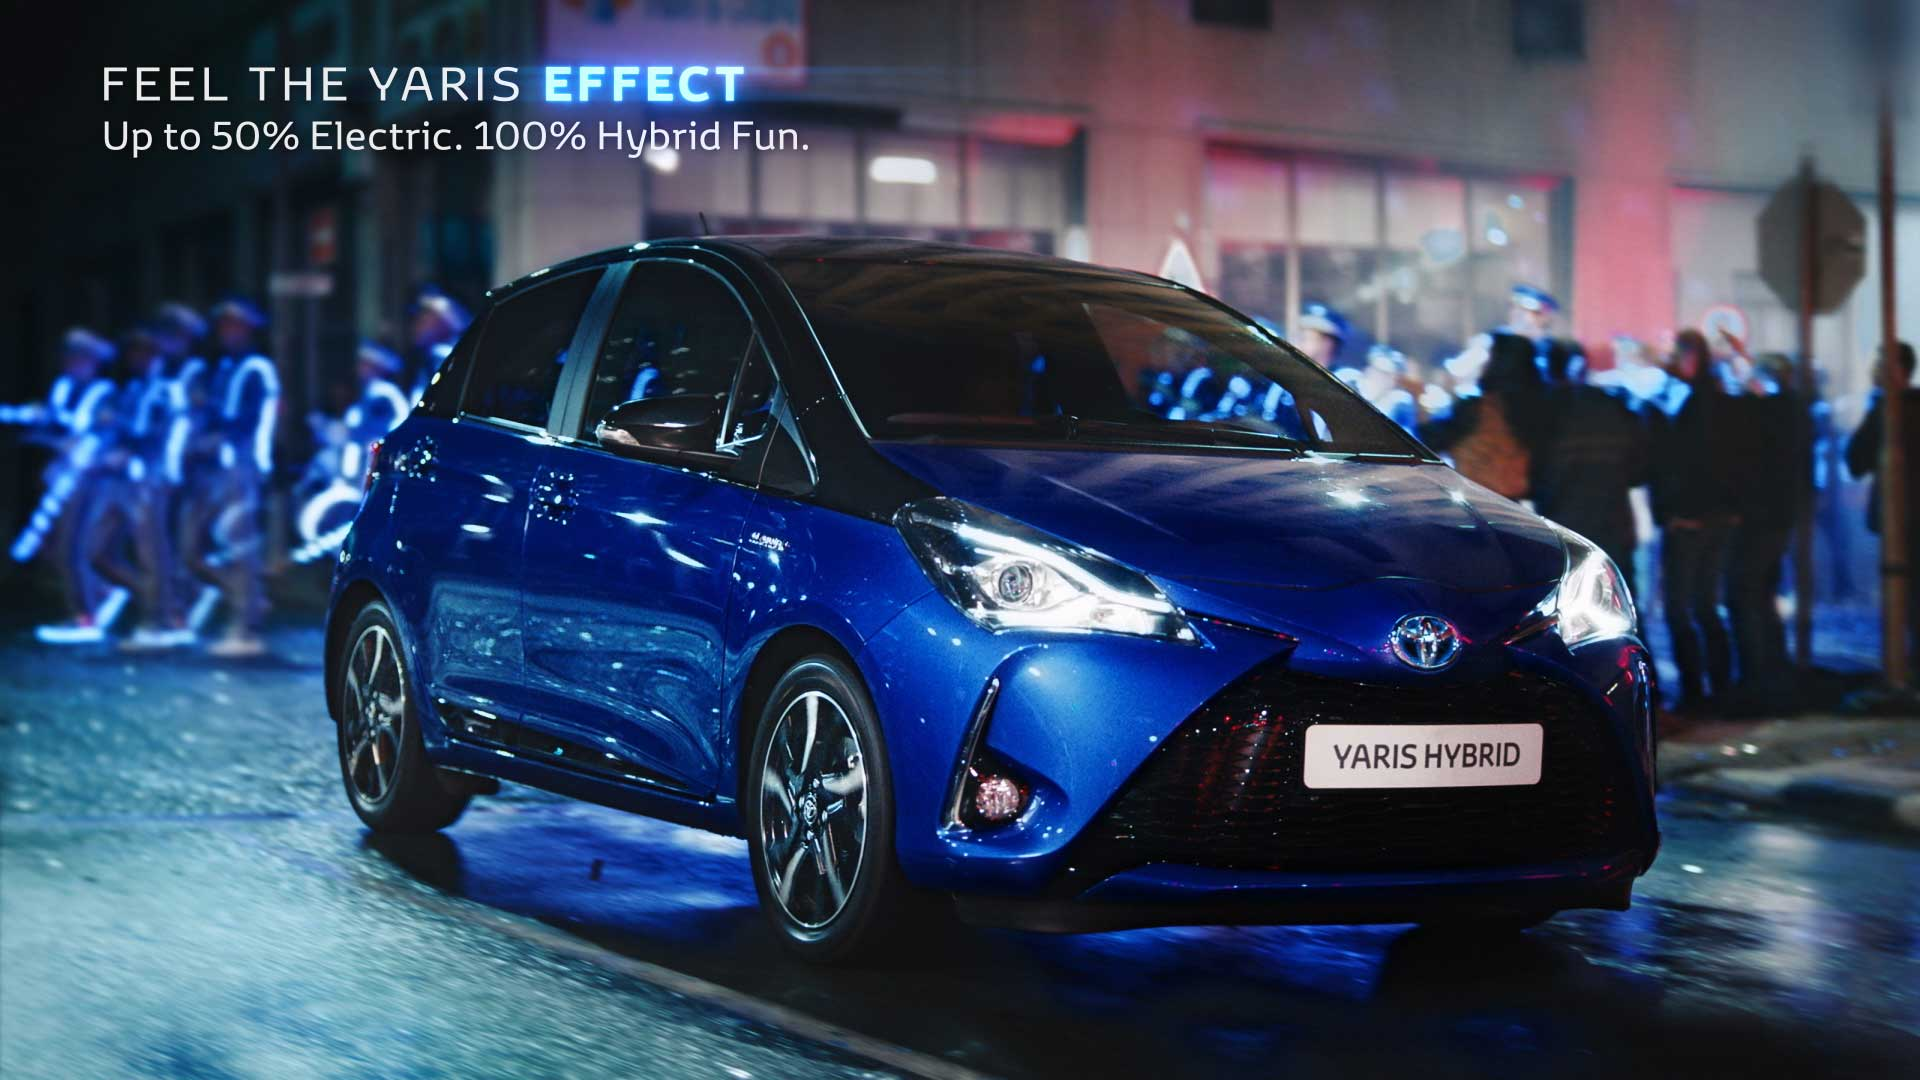 Car at night with lights. Still from Toyota Yaris commercial.